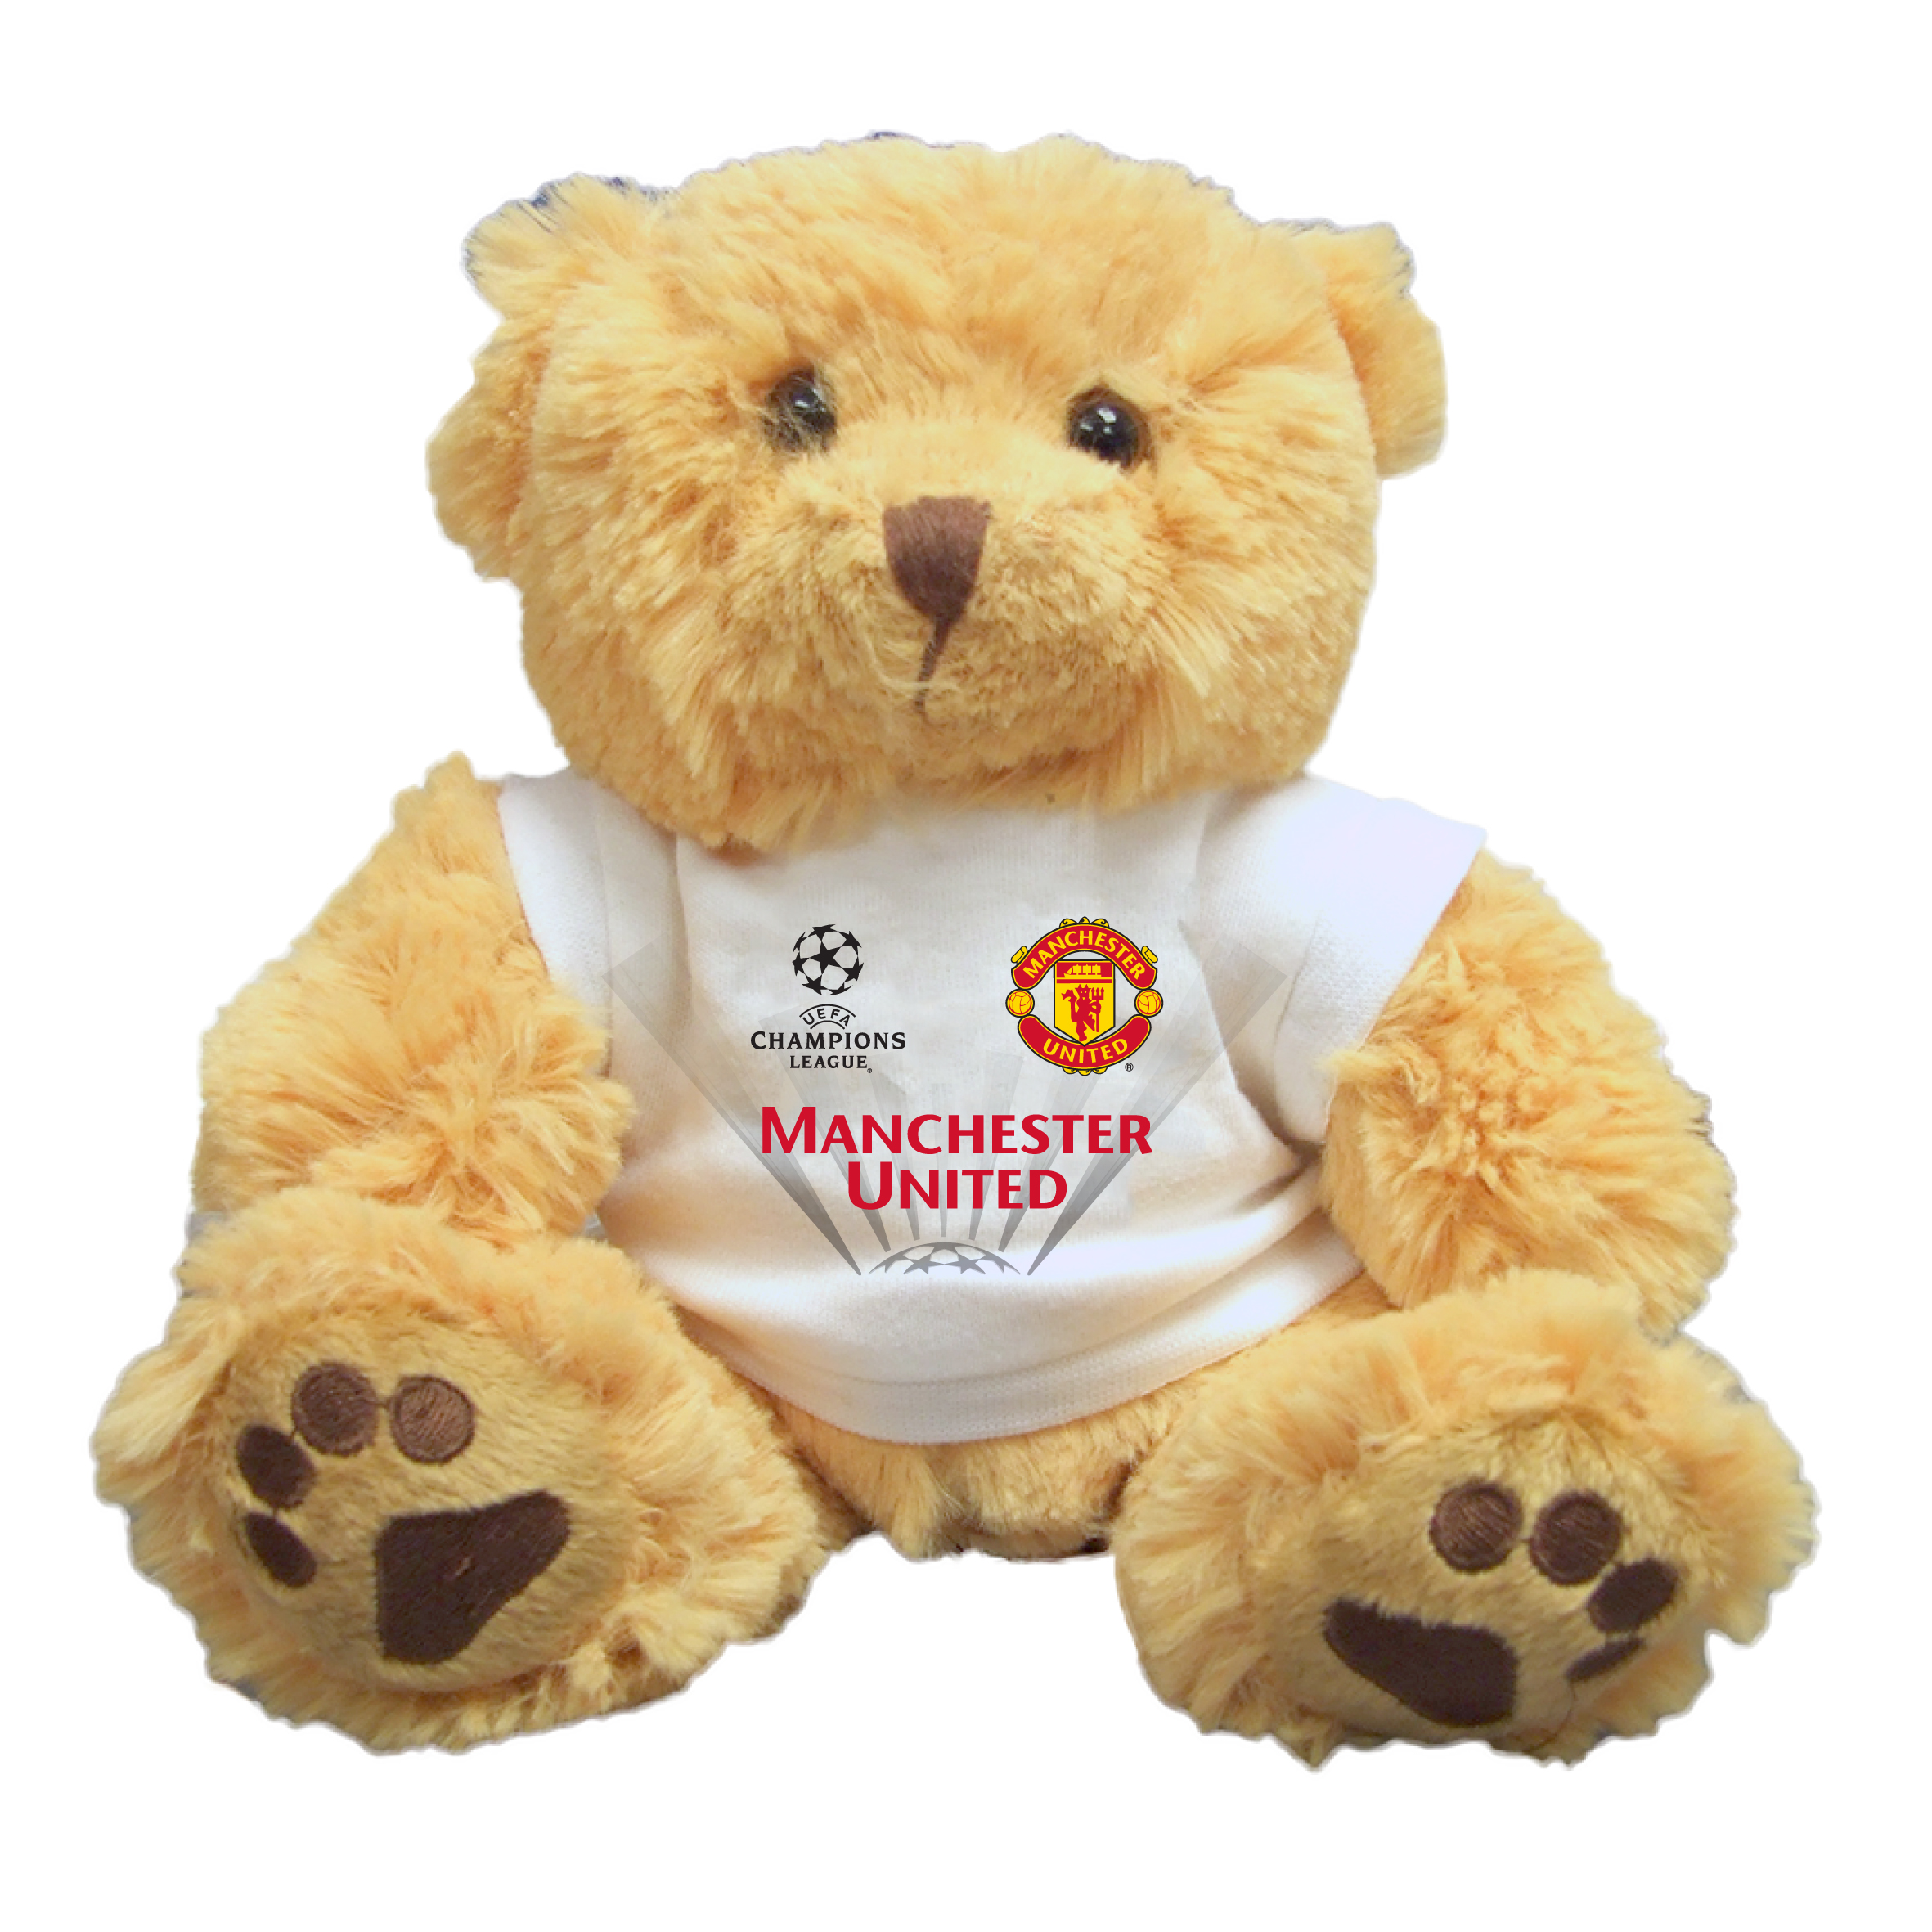 Manchester United UEFA Champions League Bear - 10 Inch